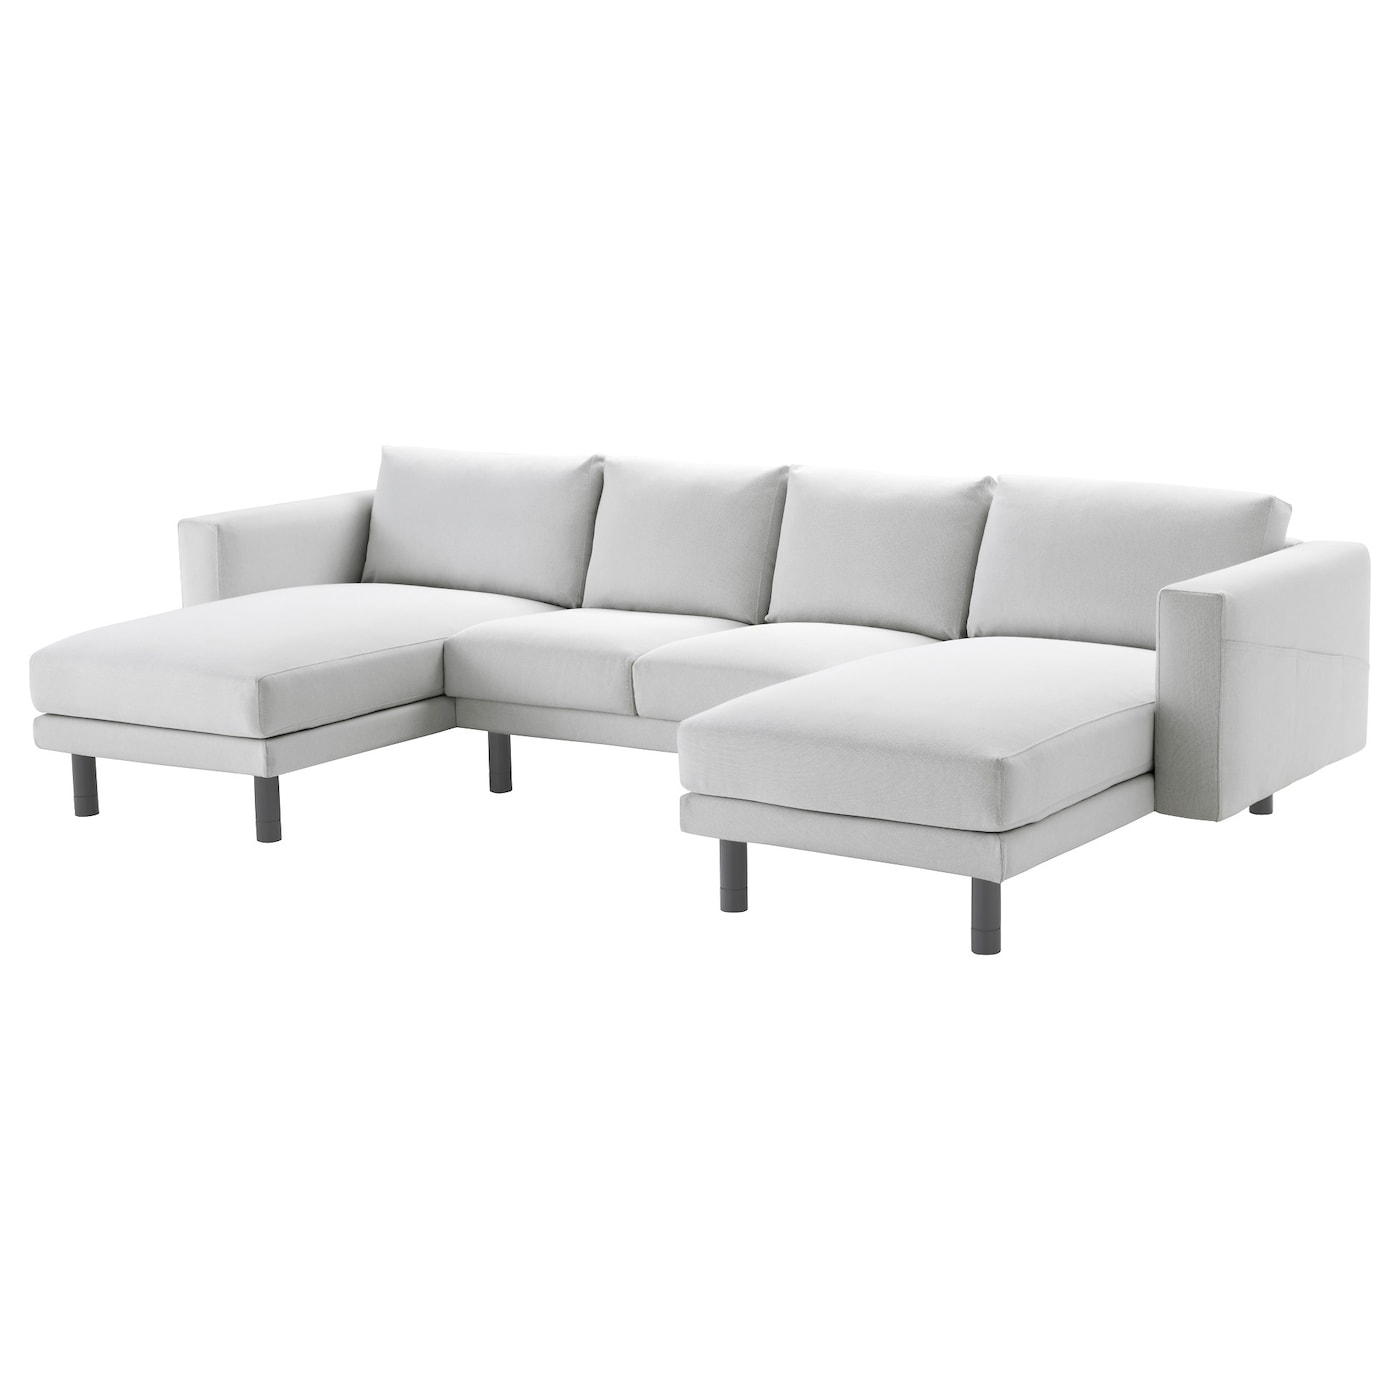 Norsborg 2 seat sofa with 2 chaise longues finnsta white for 2 seater sofa with chaise